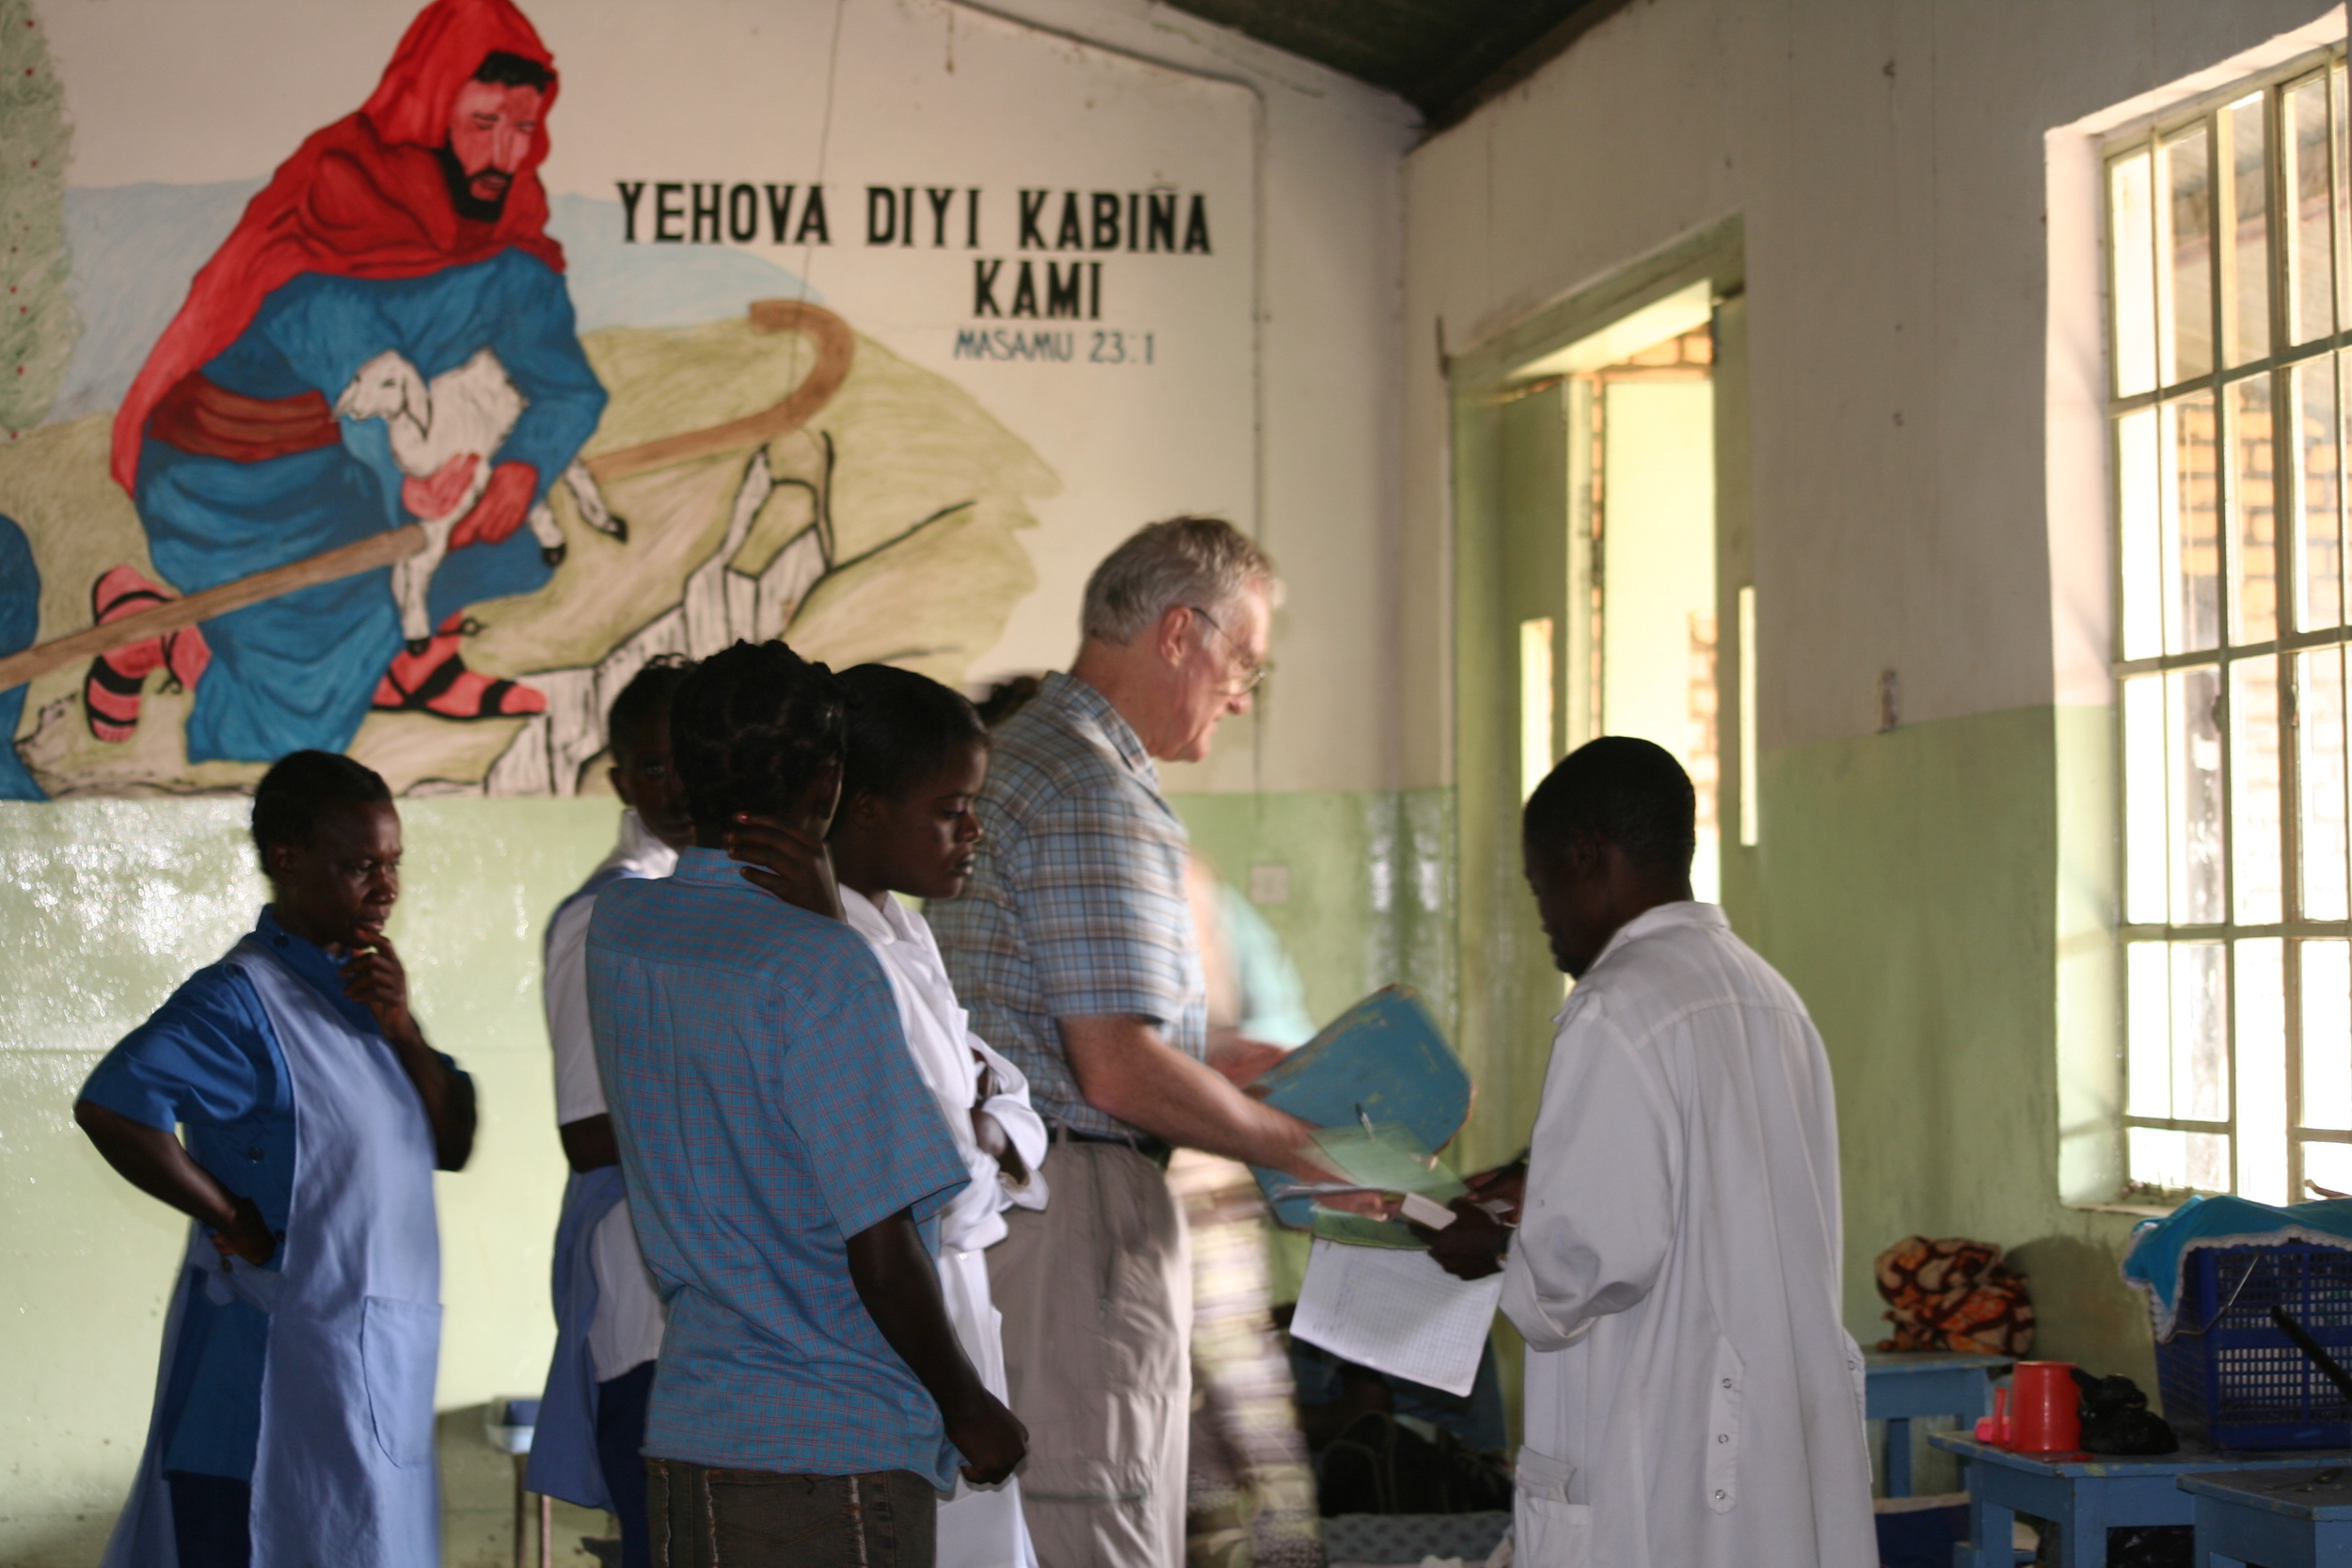 THE GOOD DOCTOR: Welsh expatriate Dr. Davies makes his daily rounds at Kalene Mission Hospital.